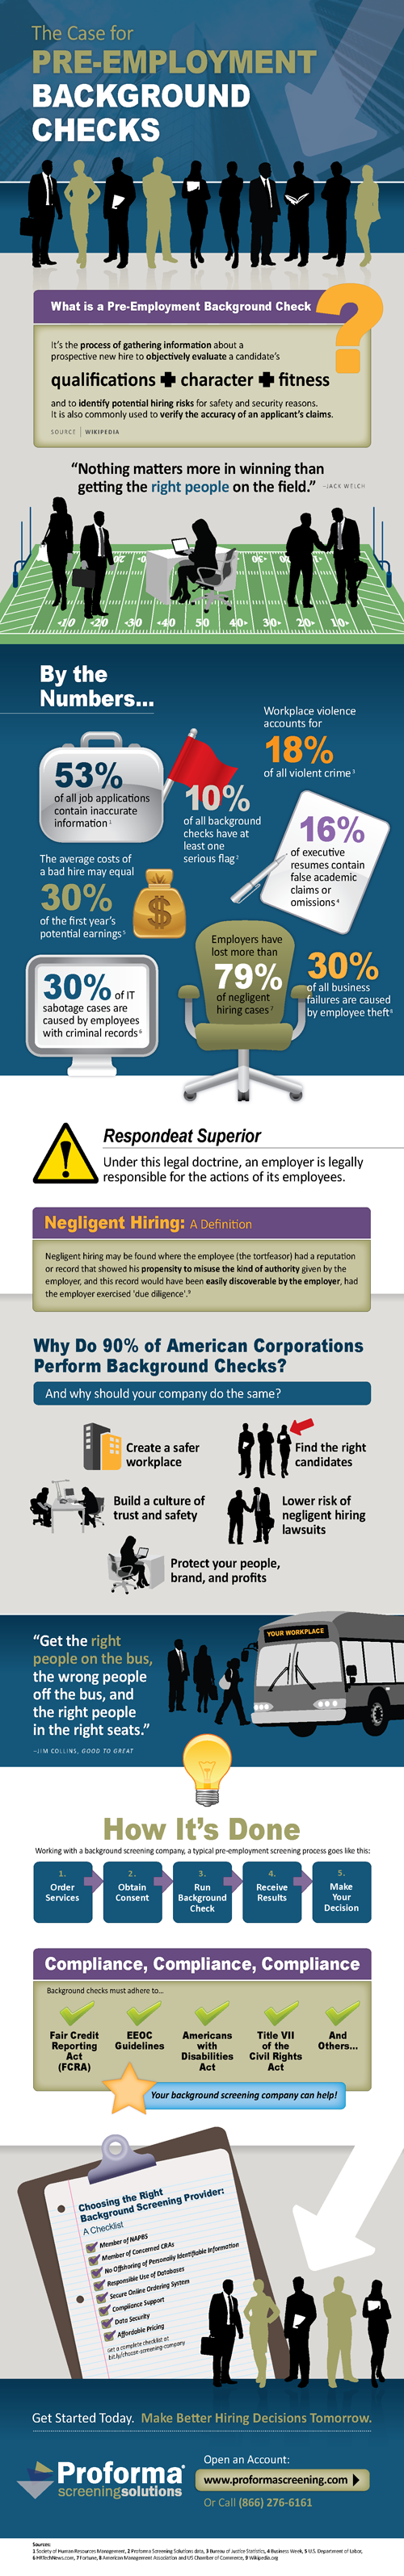 The Case for Pre-Employment Background Checks - Infographic